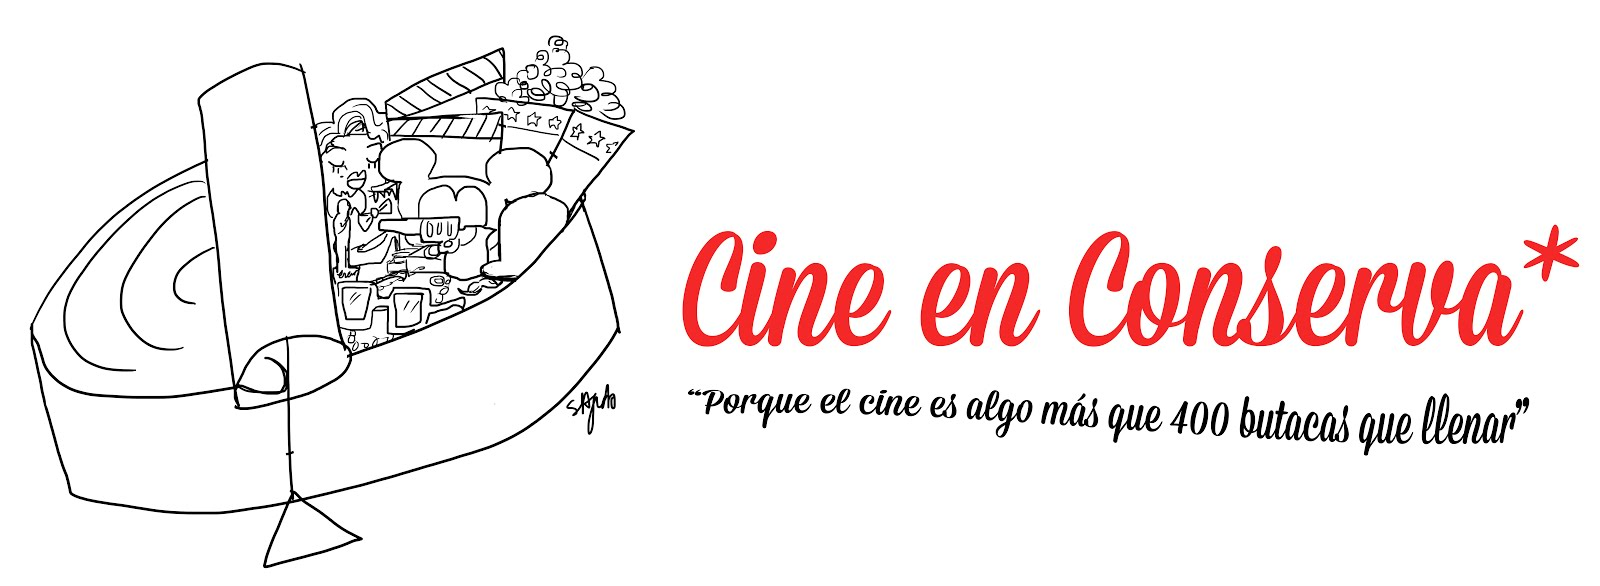 Cine en conserva